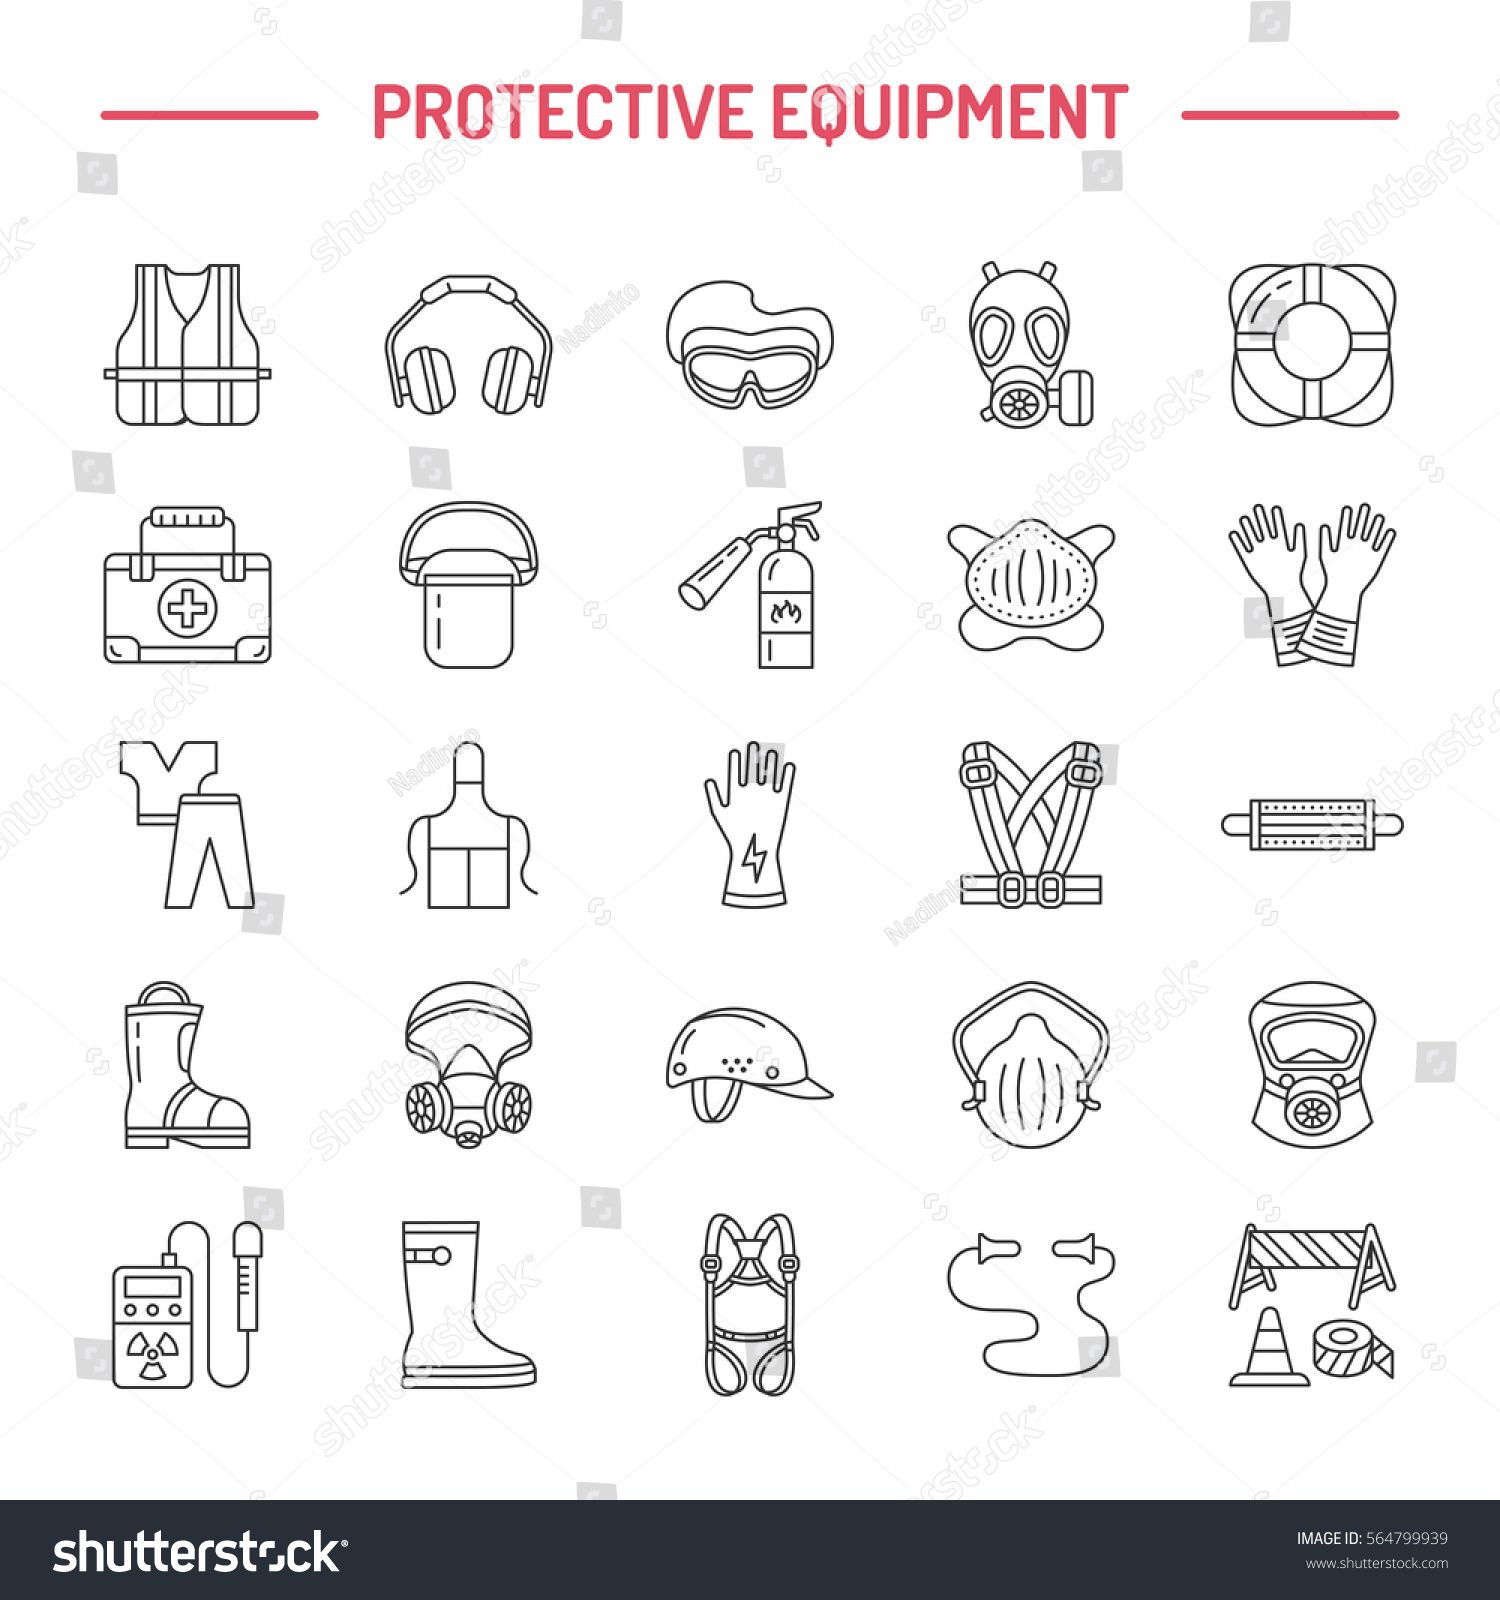 Personal Protective Equipment Line Icons Gas Mask Ring Buoy Respirator Bump Cap Ear Plugs Line Icon Brochure Design Template Personal Protective Equipment